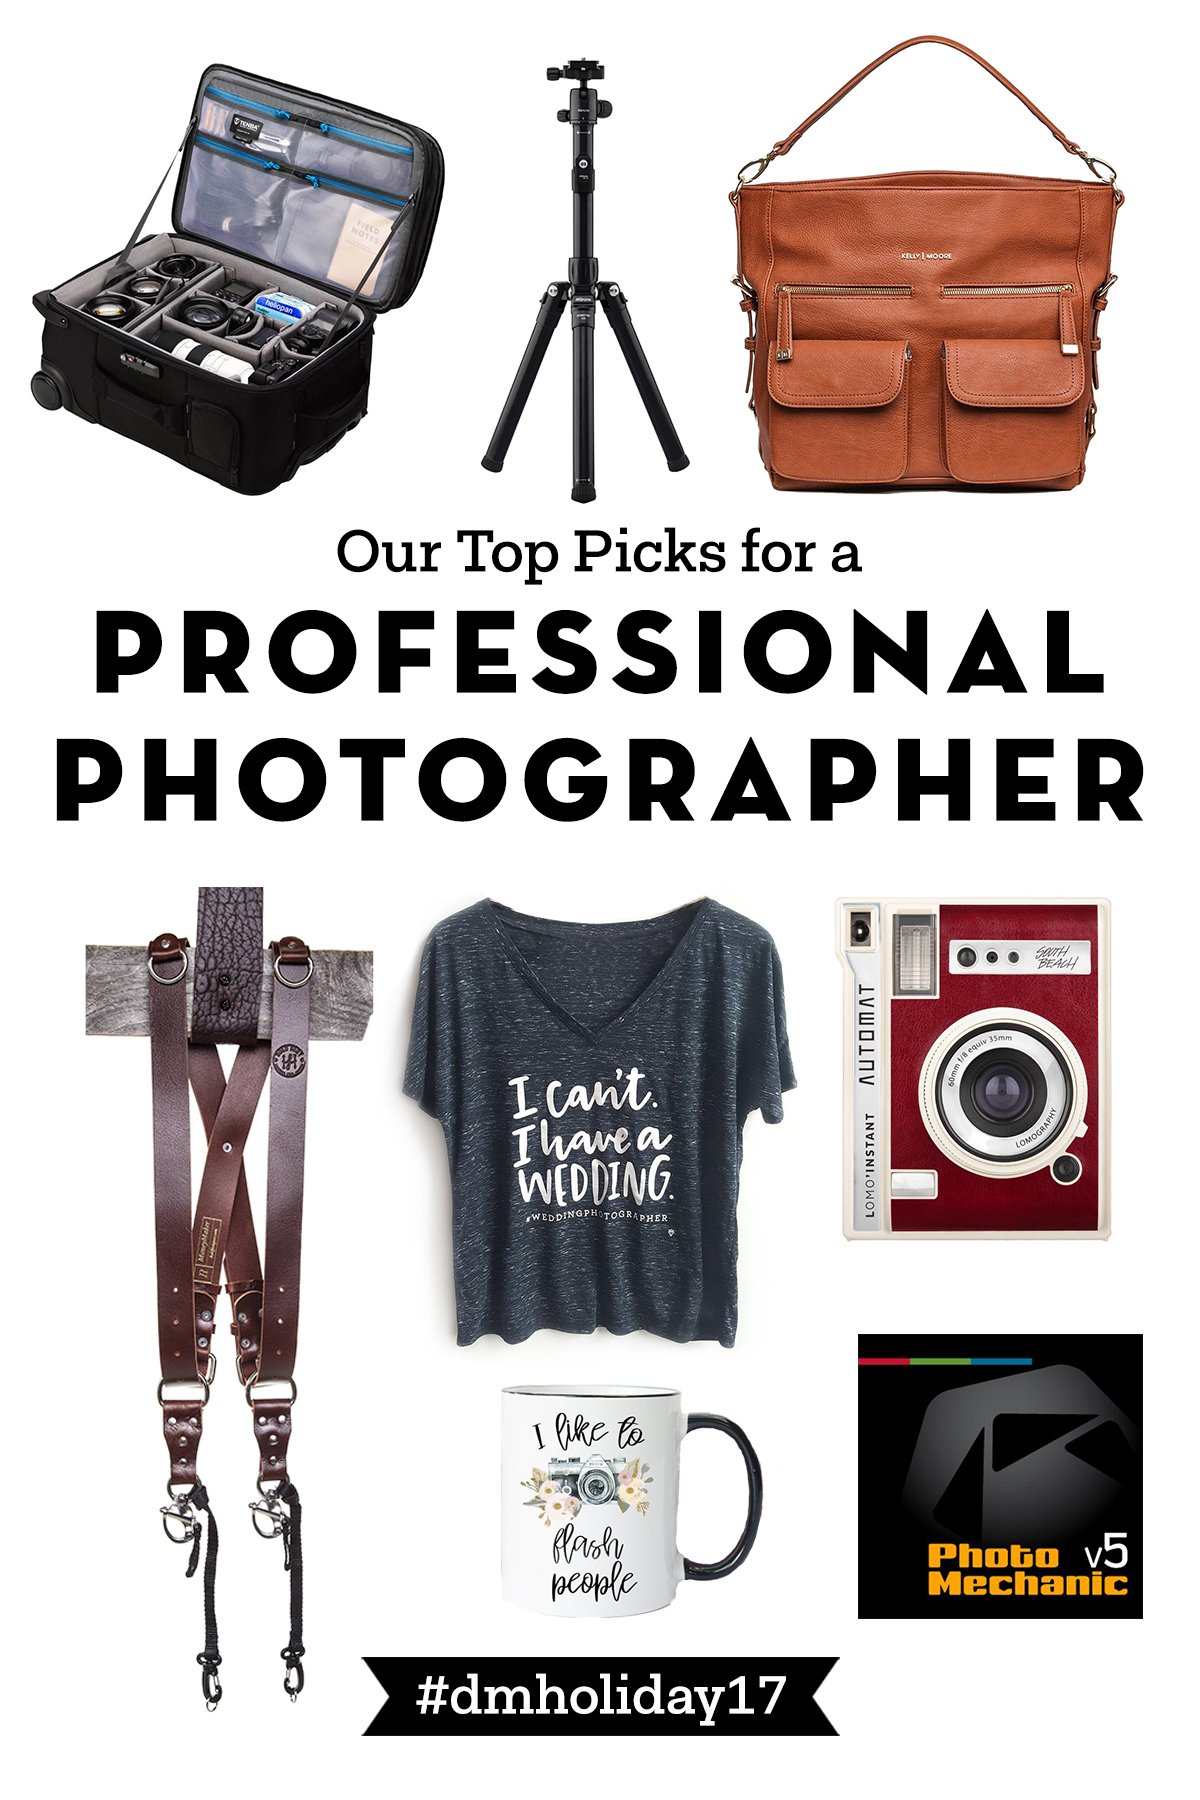 Daily Mom's Guide to Gifts for a Professional Photographer